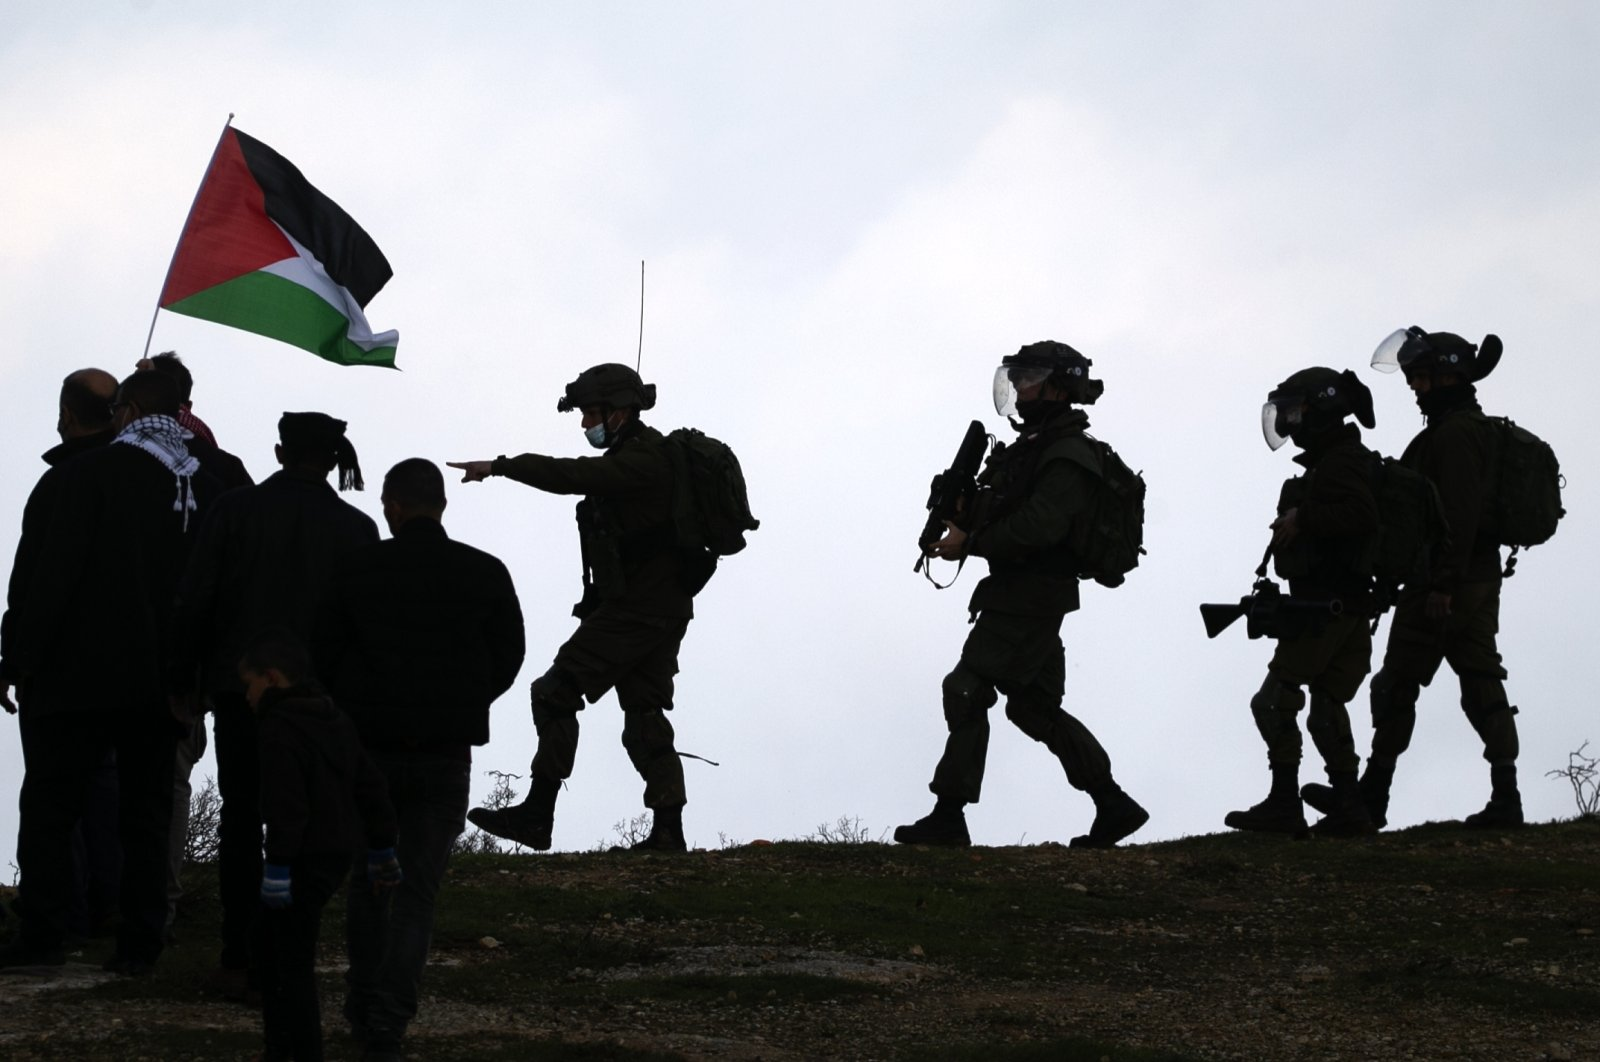 Palestinian protesters clash with Israeli security forces following a demonstration against the expansion of settlements near the village of Beit Dajan, east of Nablus, in the occupied West Bank, Feb. 5, 2021. (AFP Photo)